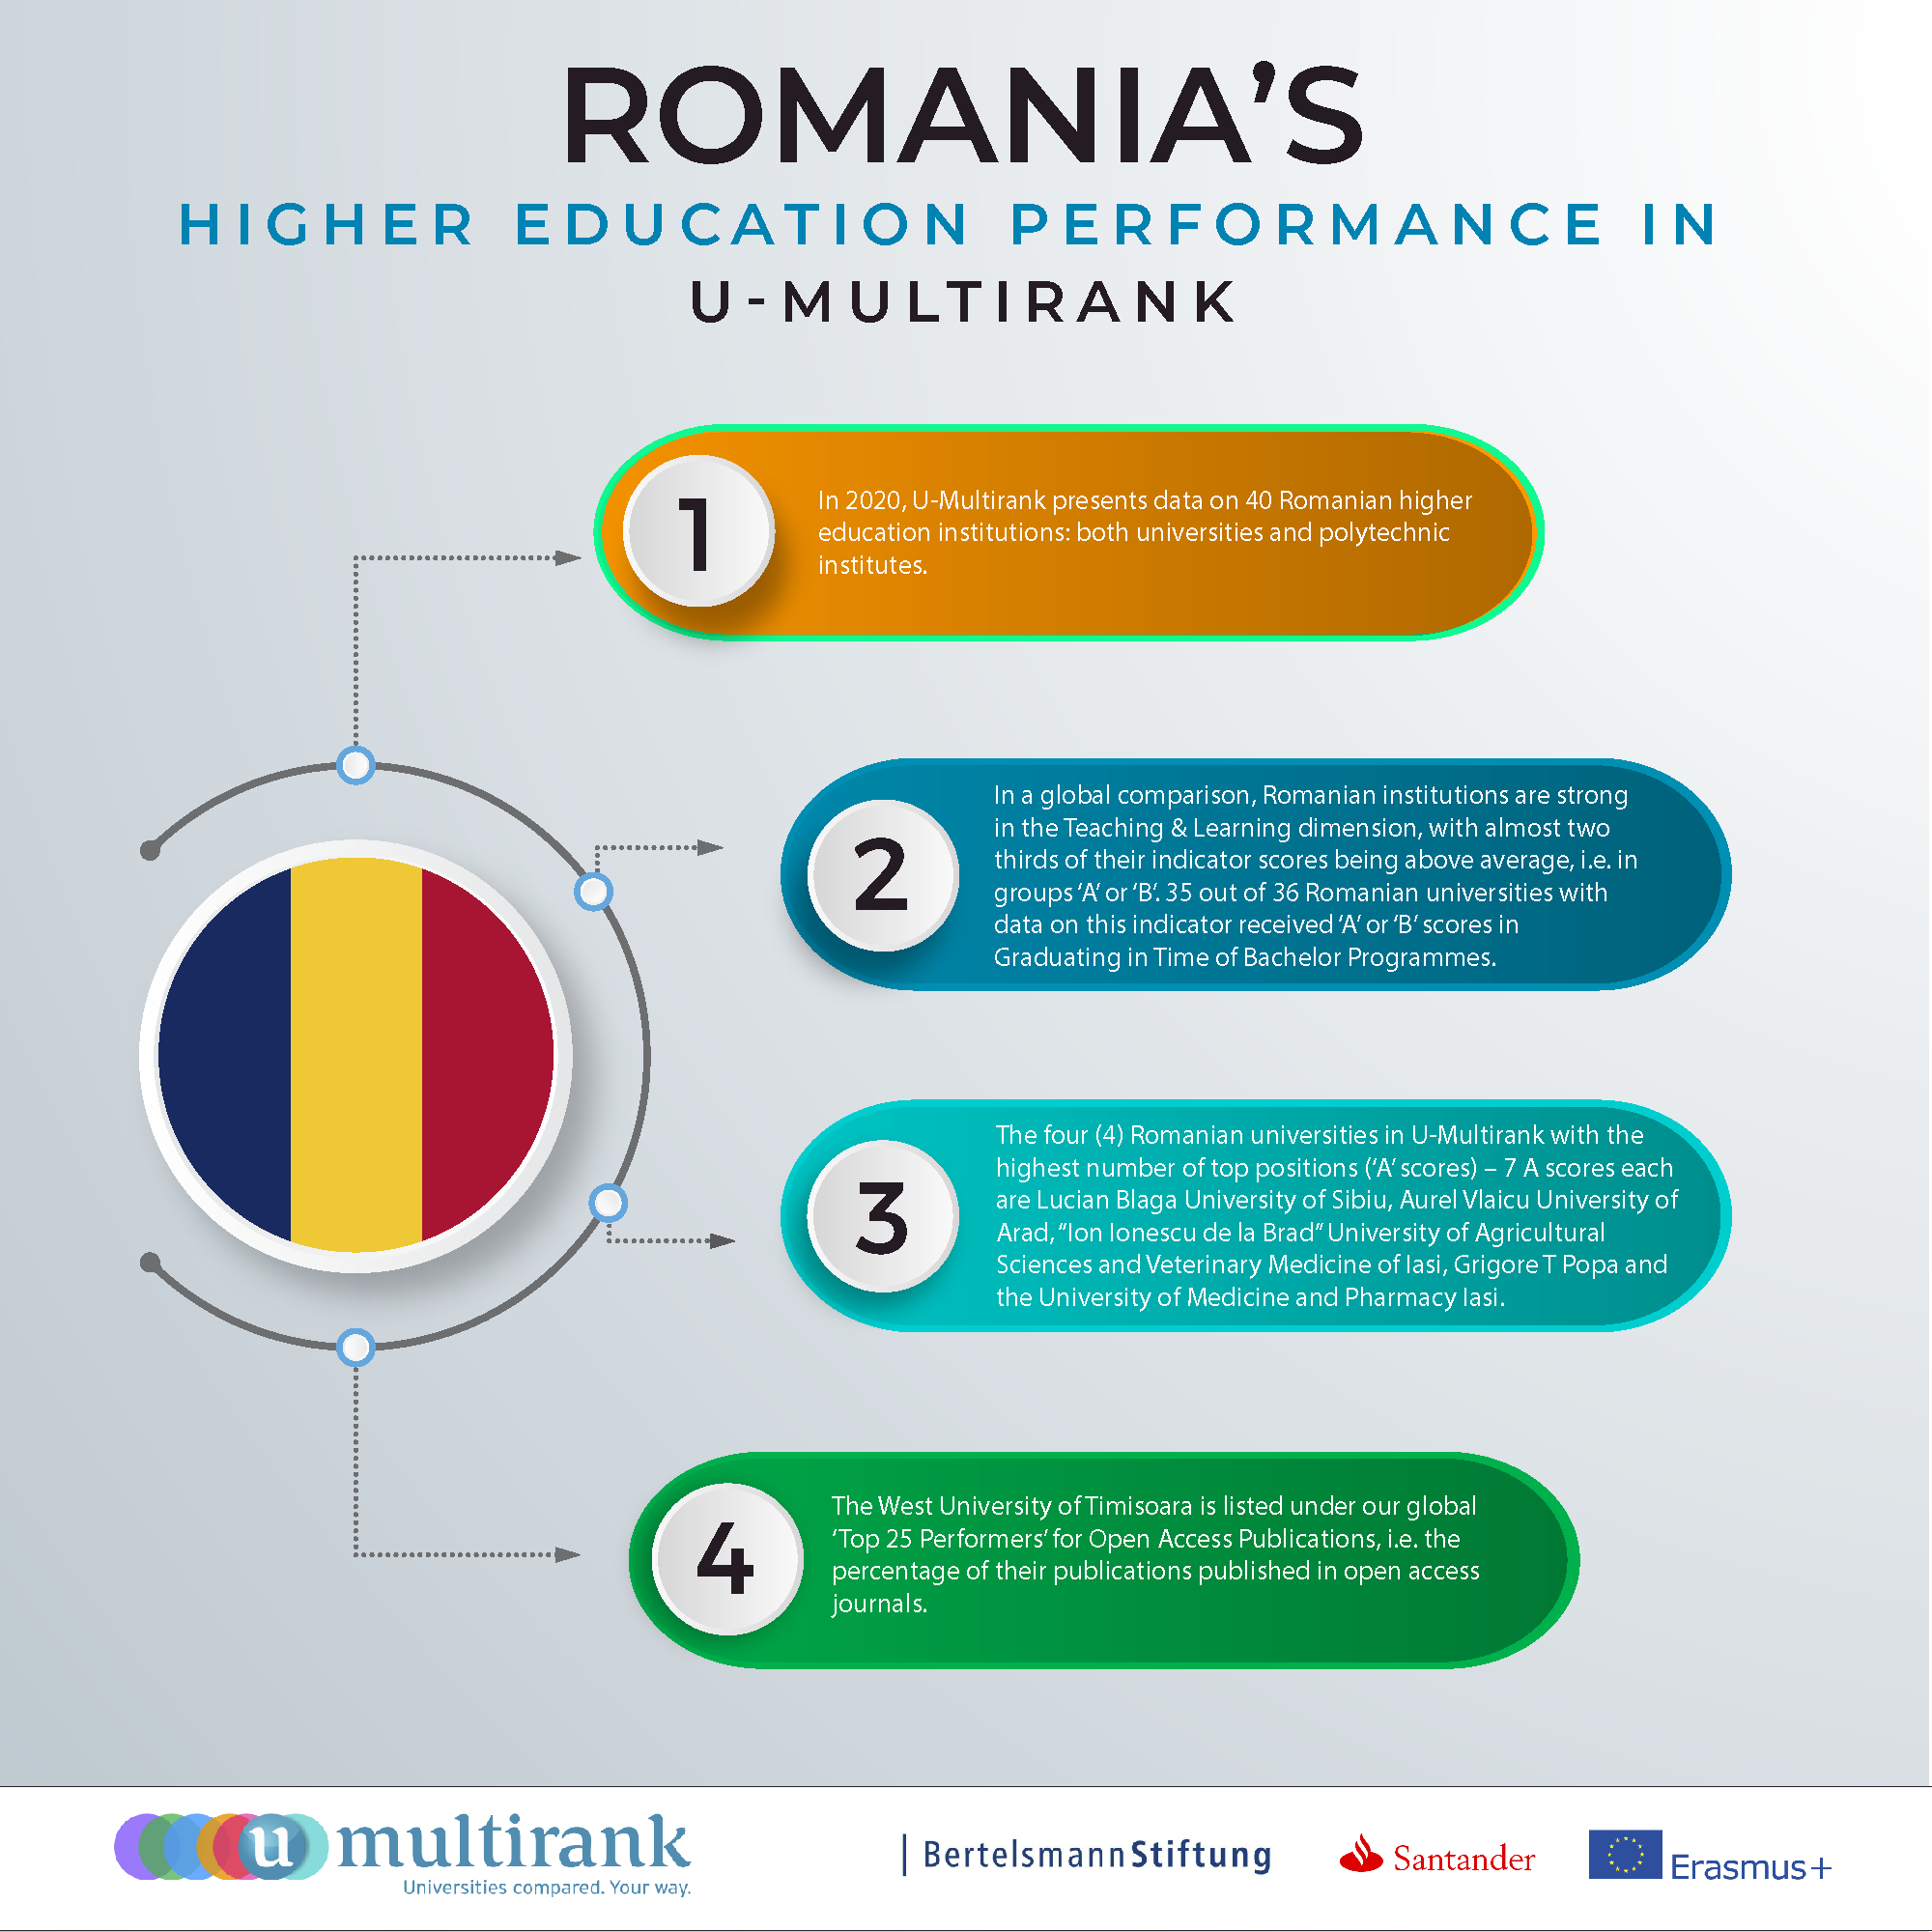 Romania's Higher Education Performance in U-Multirank